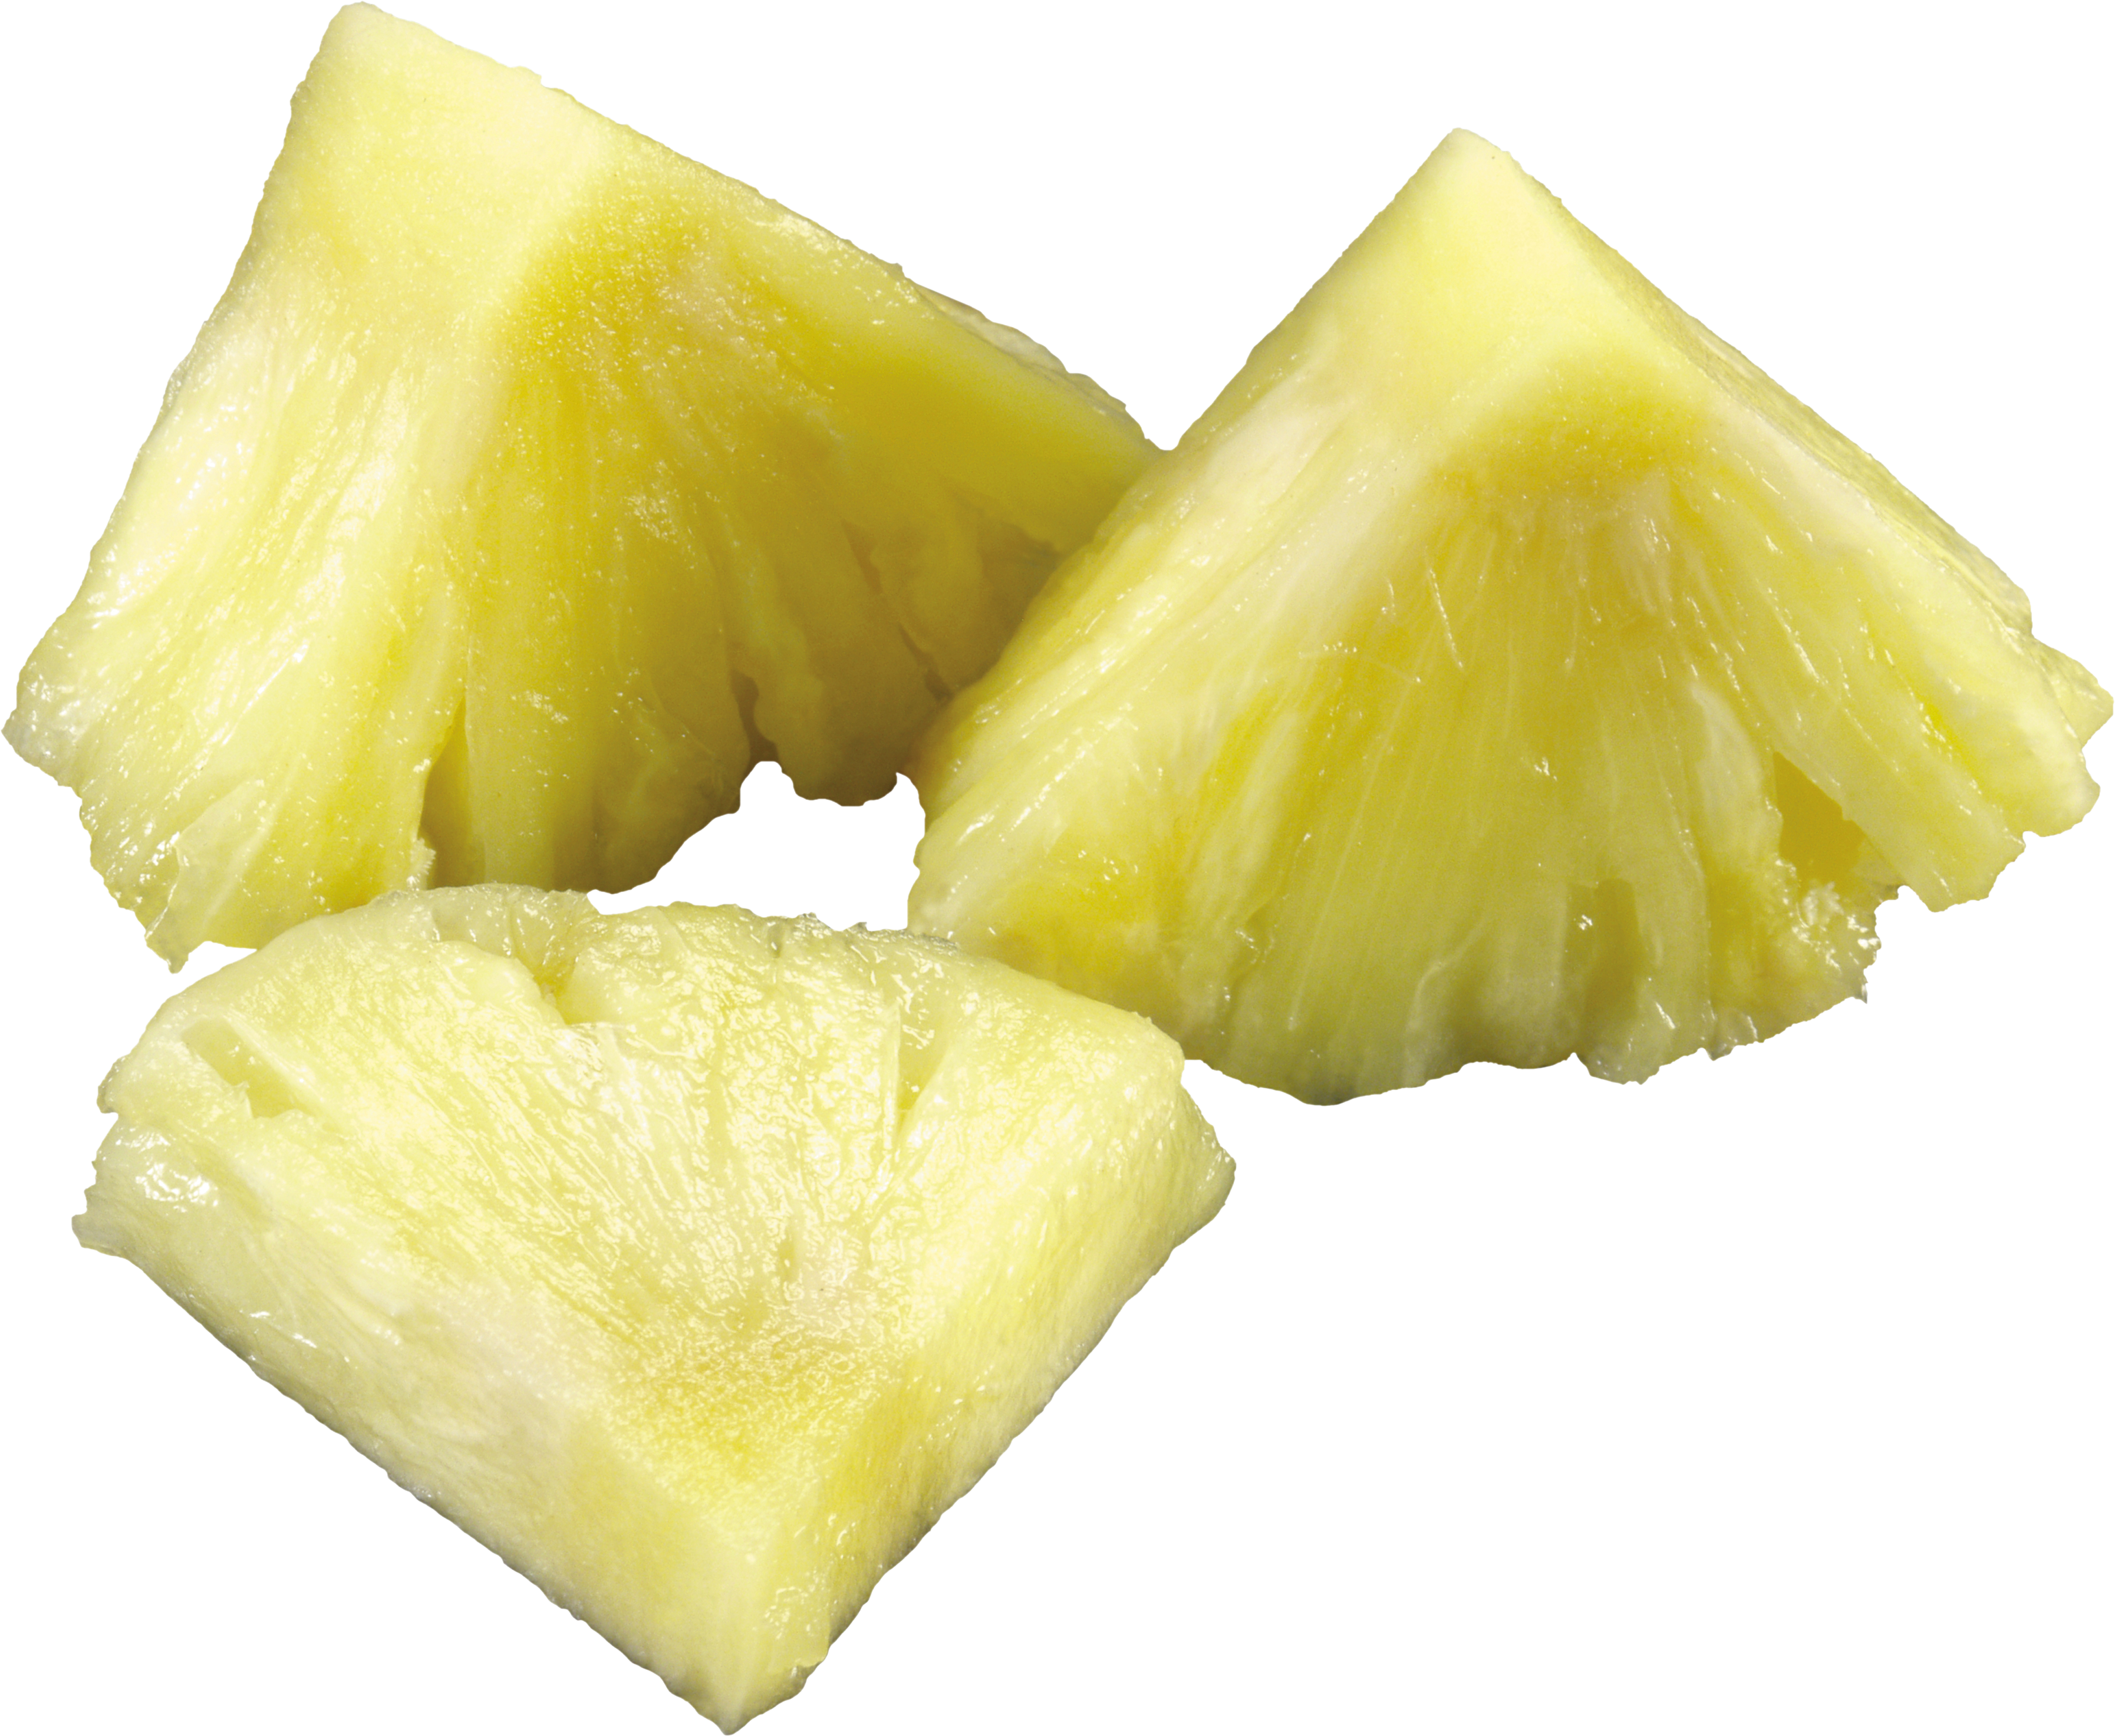 Apple pieces clipart jpg black and white Pinapple Slices PNG Image - PurePNG   Free transparent CC0 PNG Image ... jpg black and white